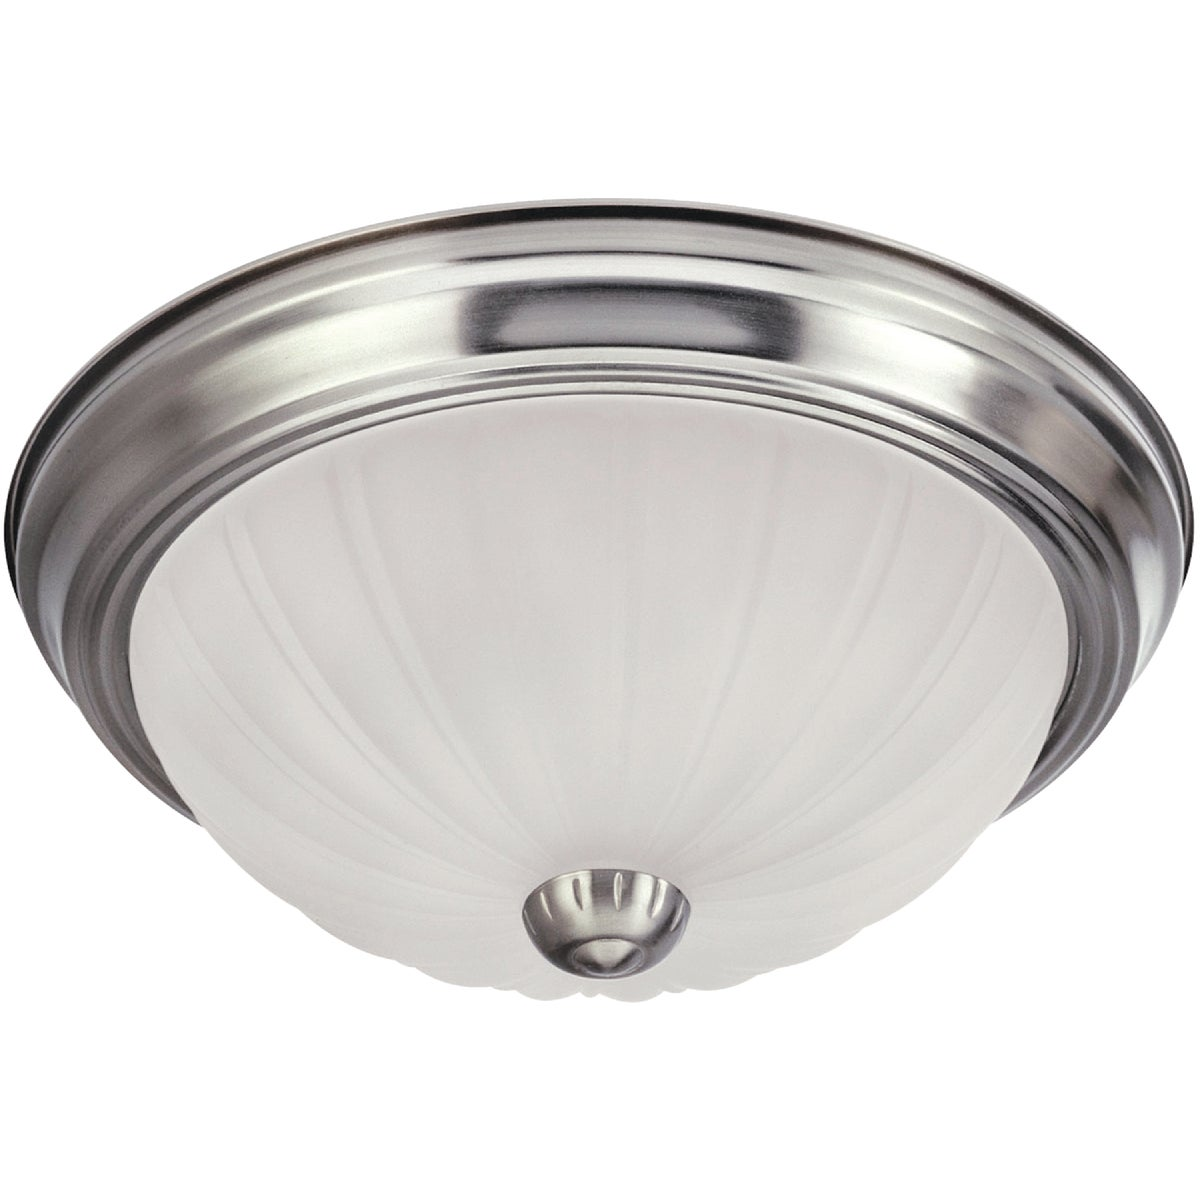 Westinghouse Lighting NKL CEILING FIXTURE 64321